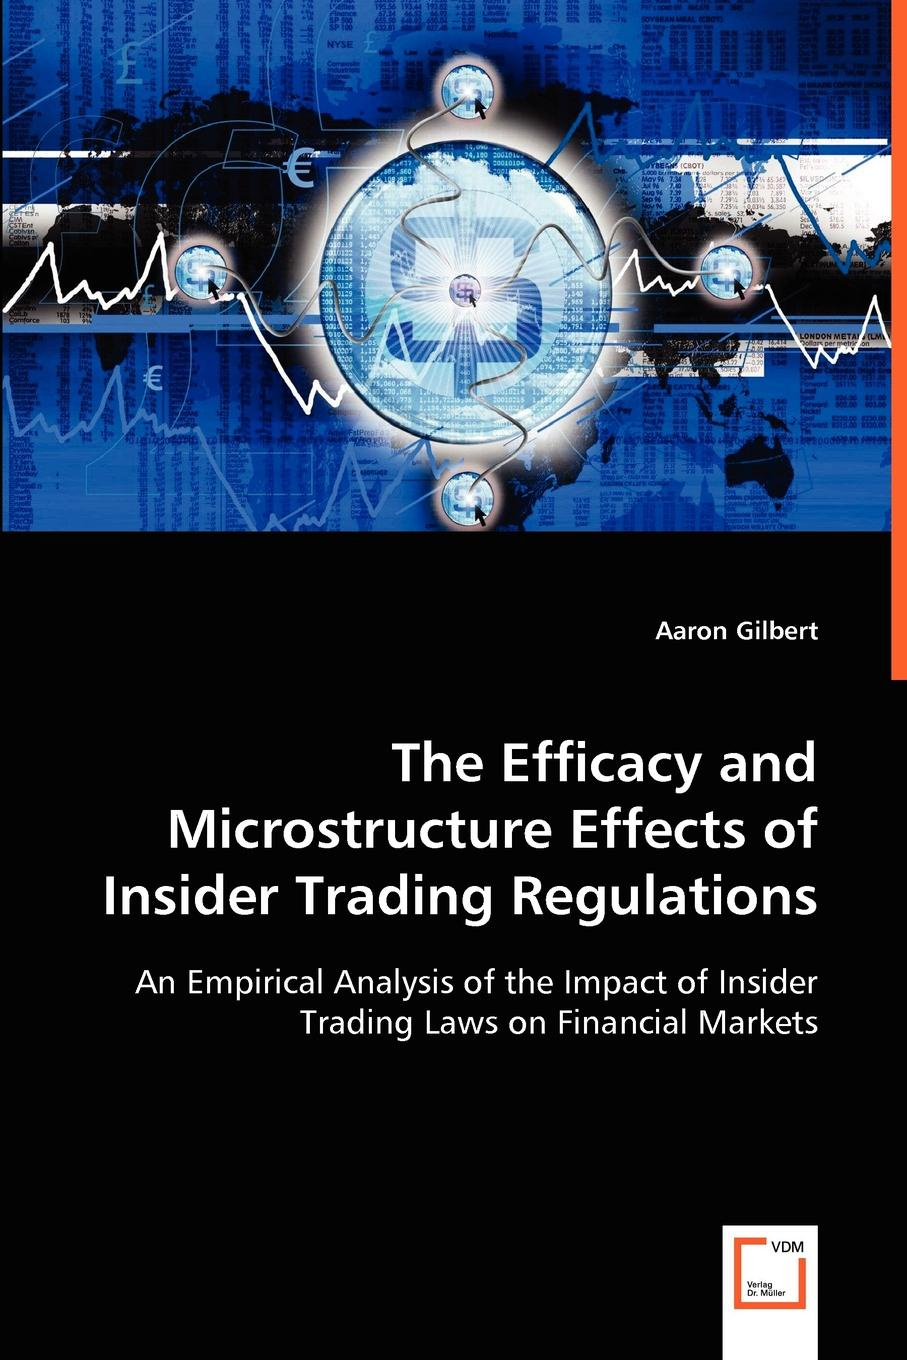 Aaron Gilbert The Efficacy and Microstructure Effects of Insider Trading Regulations halil kiymaz market microstructure in emerging and developed markets price discovery information flows and transaction costs